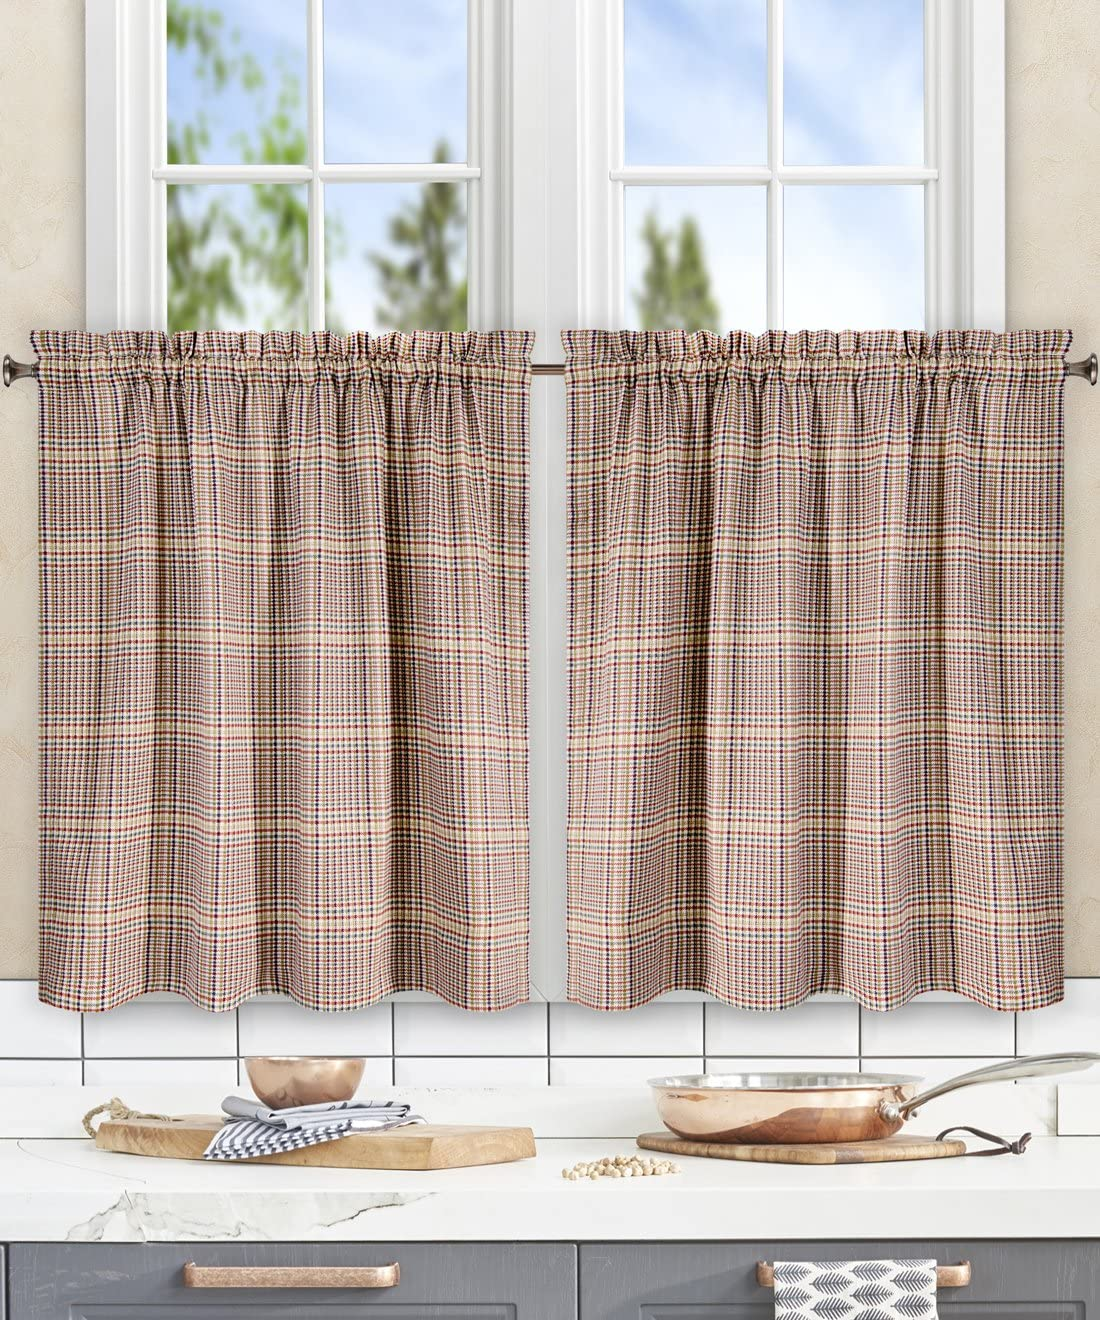 Ellis Curtain Morrison Multi Colored Plaid 100-Percent Cotton Tailored Tier Curtains, 56×36 , Patriot